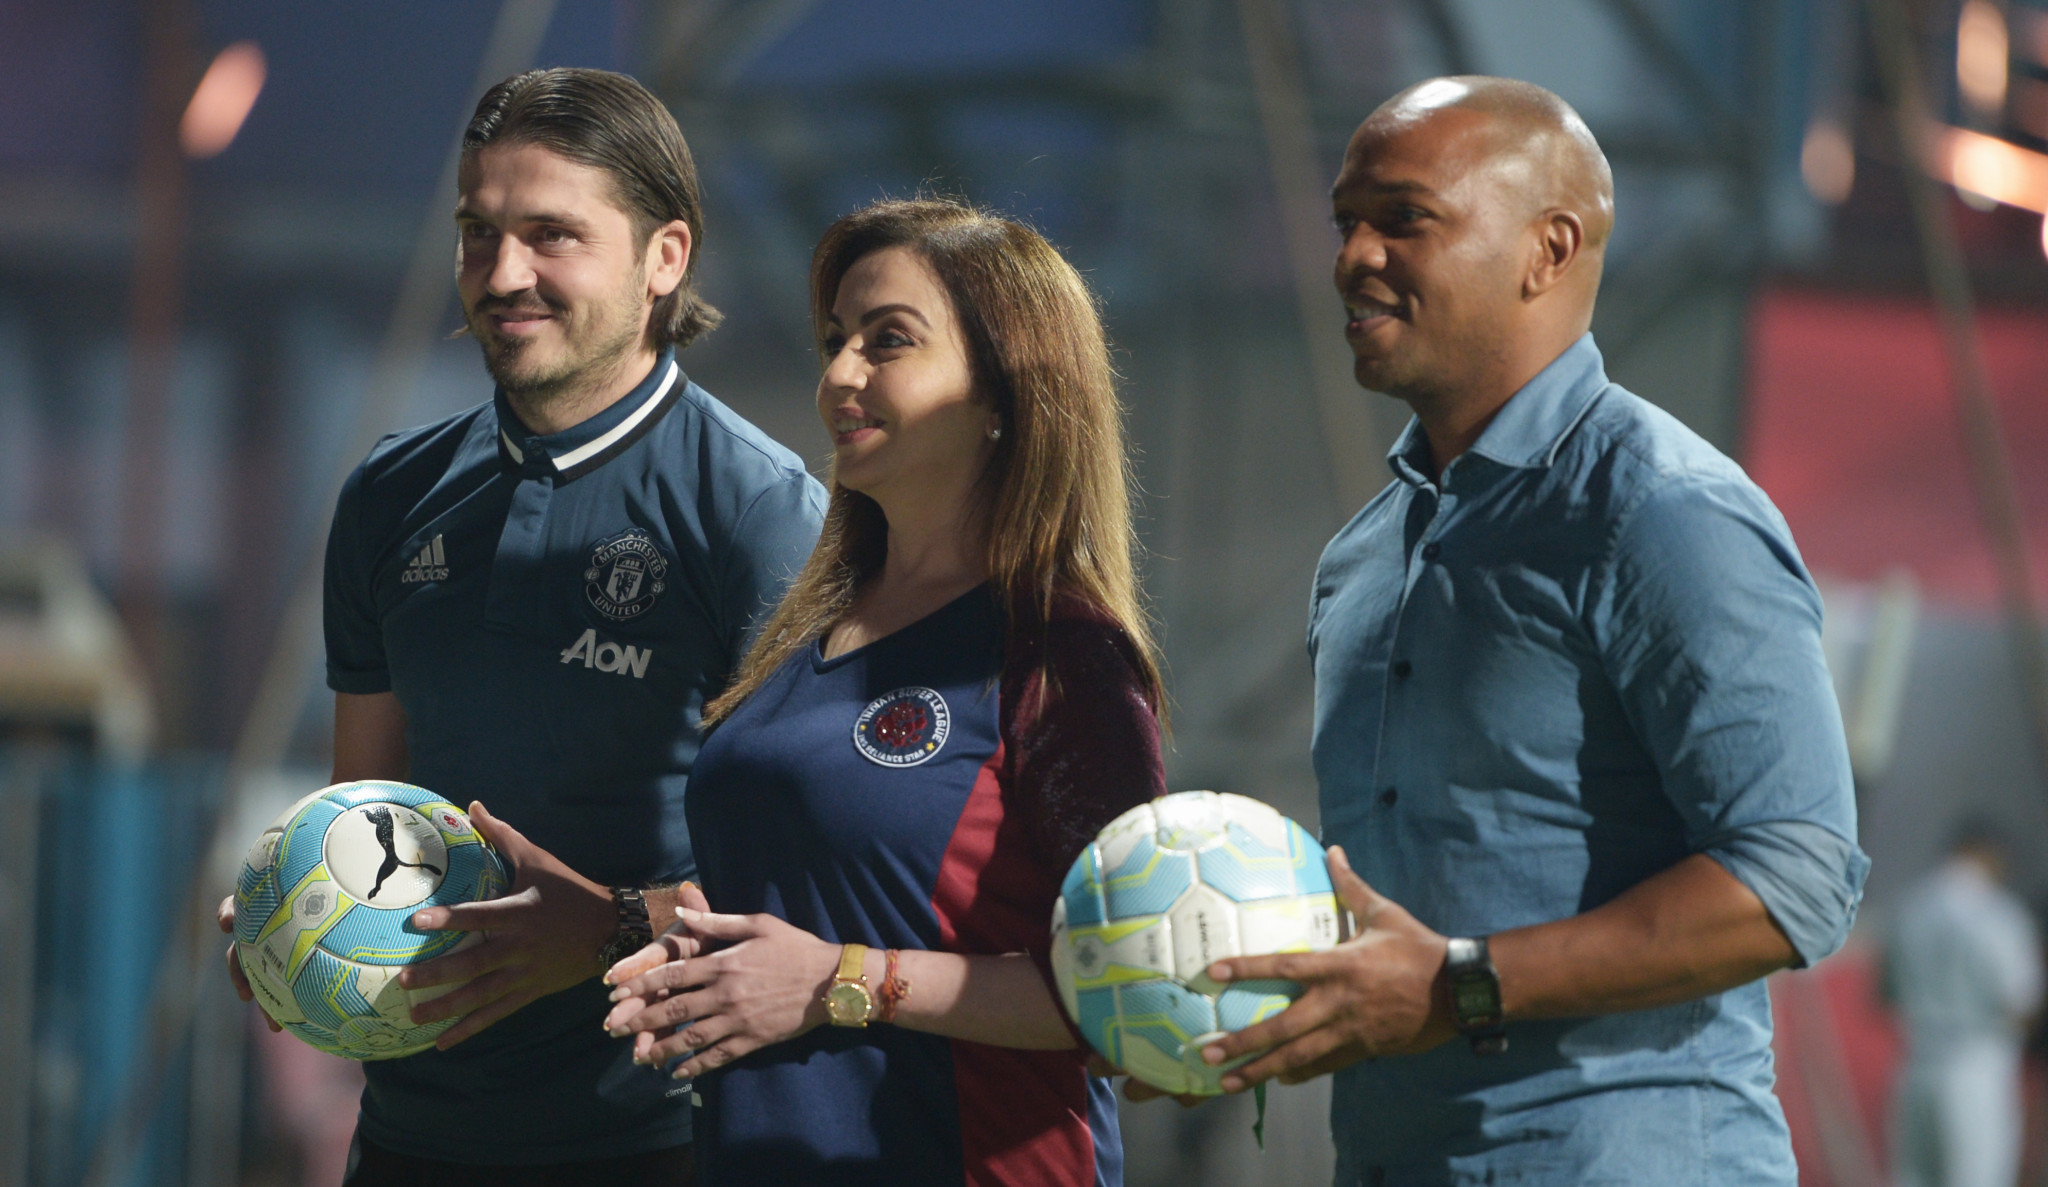 Nita Ambani, director of the Indian Super League, seen here with former Manchester United players Quinton Fortune, right,  and Bojan Djordjic, has joined the top 20 IOC members list on Twitter ©Getty Images